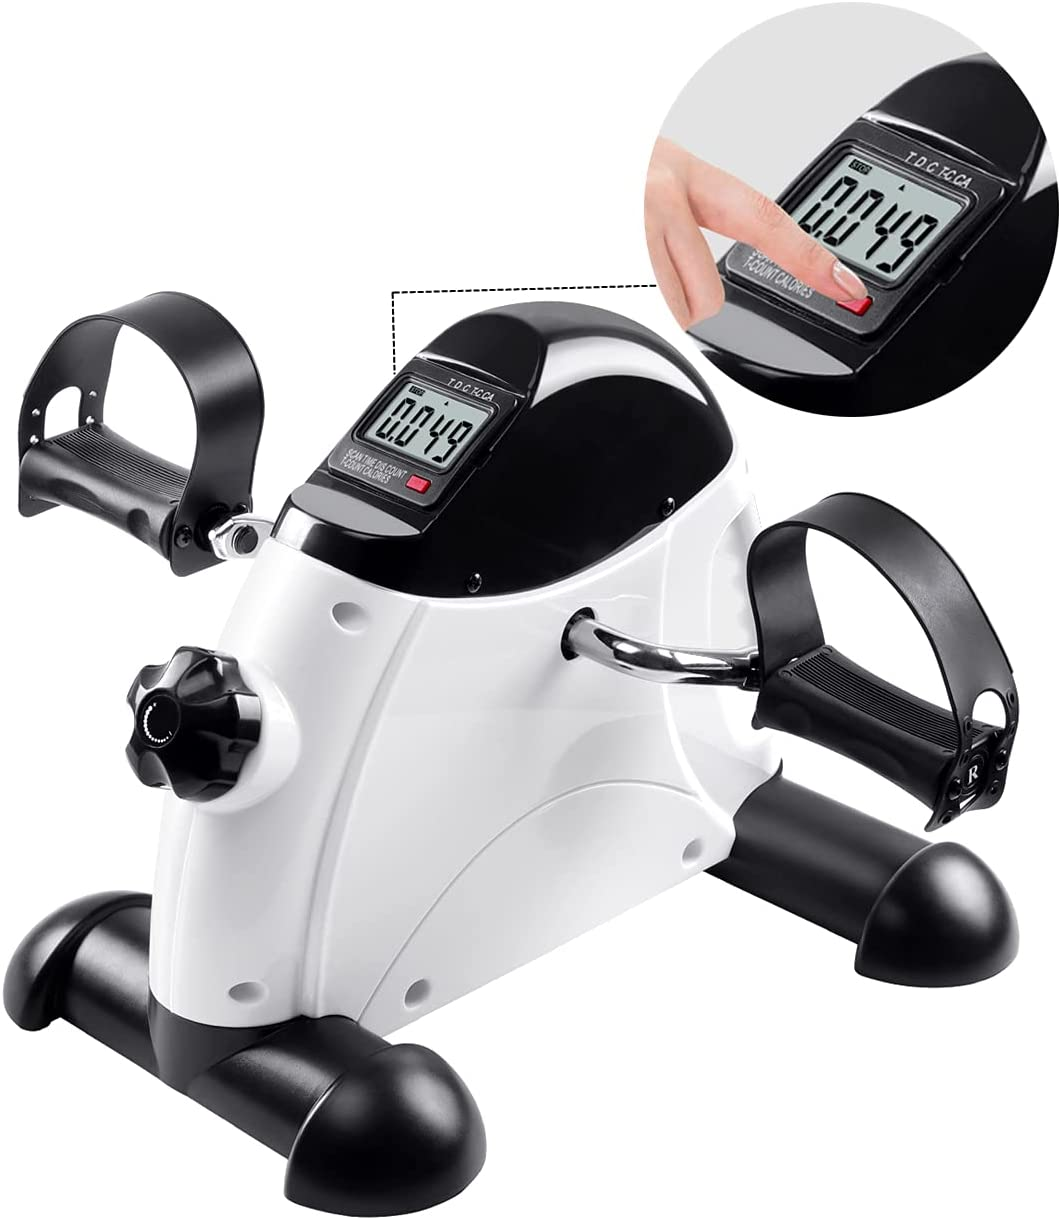 Pedal Exerciser Stationary Under Desk Bike Peddler Mini Exercise with LCD Display, Legs and Arms Portable Foot Cycle Pedal for Office Home Women Men Seniors, White